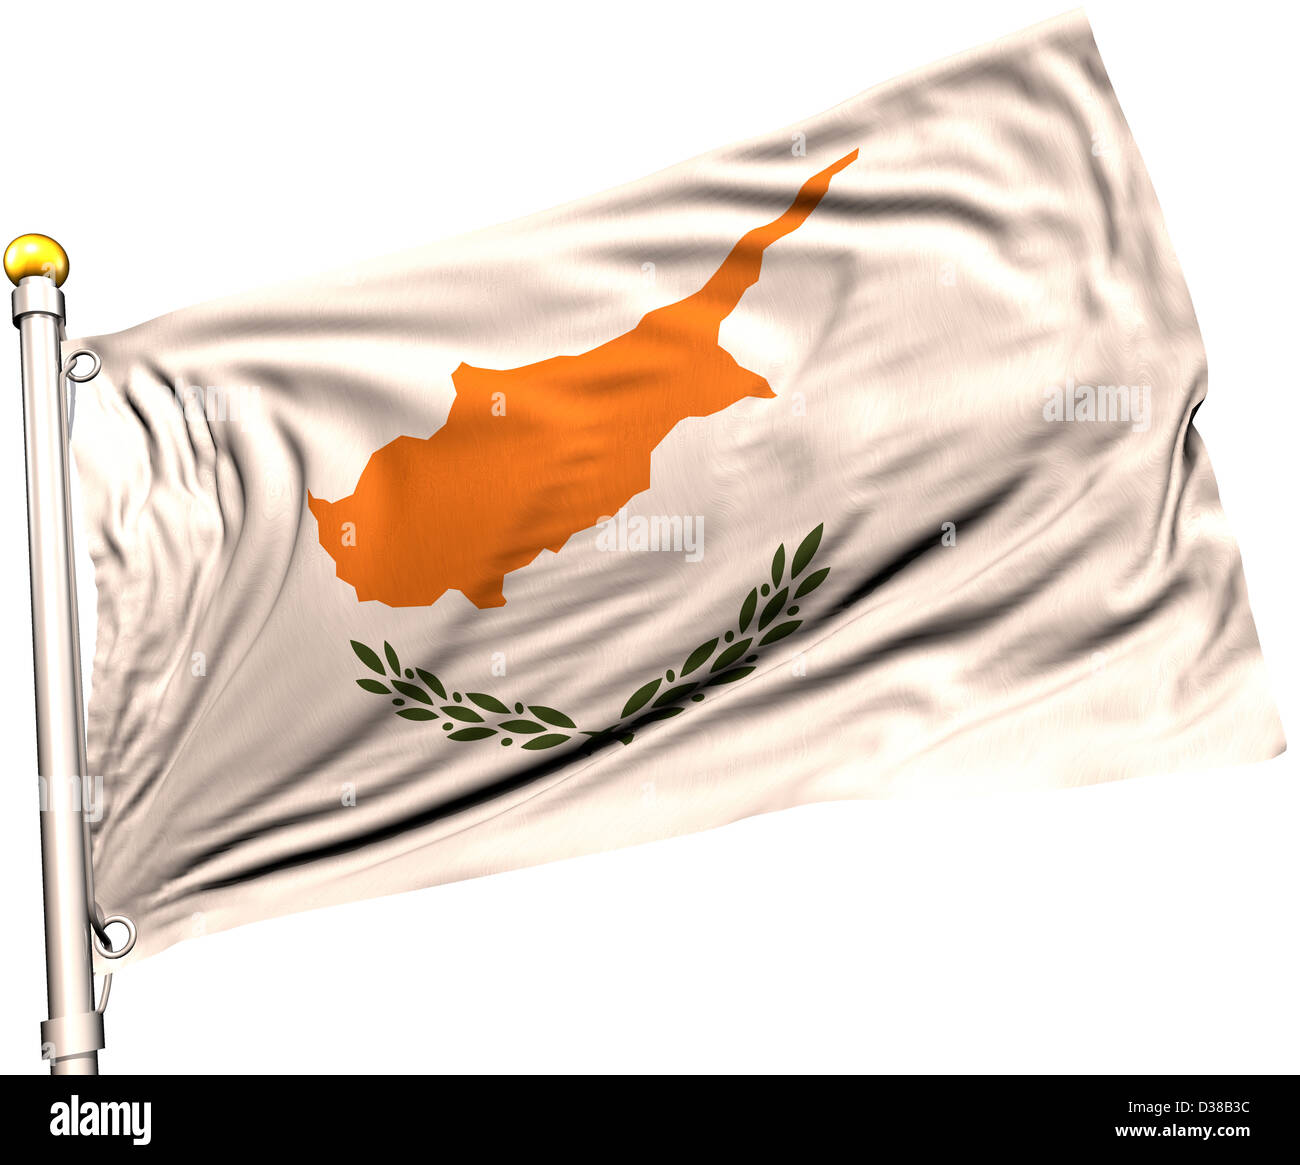 Cyprus flag on a flag pole. Clipping path included. Silk texture visible on the flag at 100%. - Stock Image